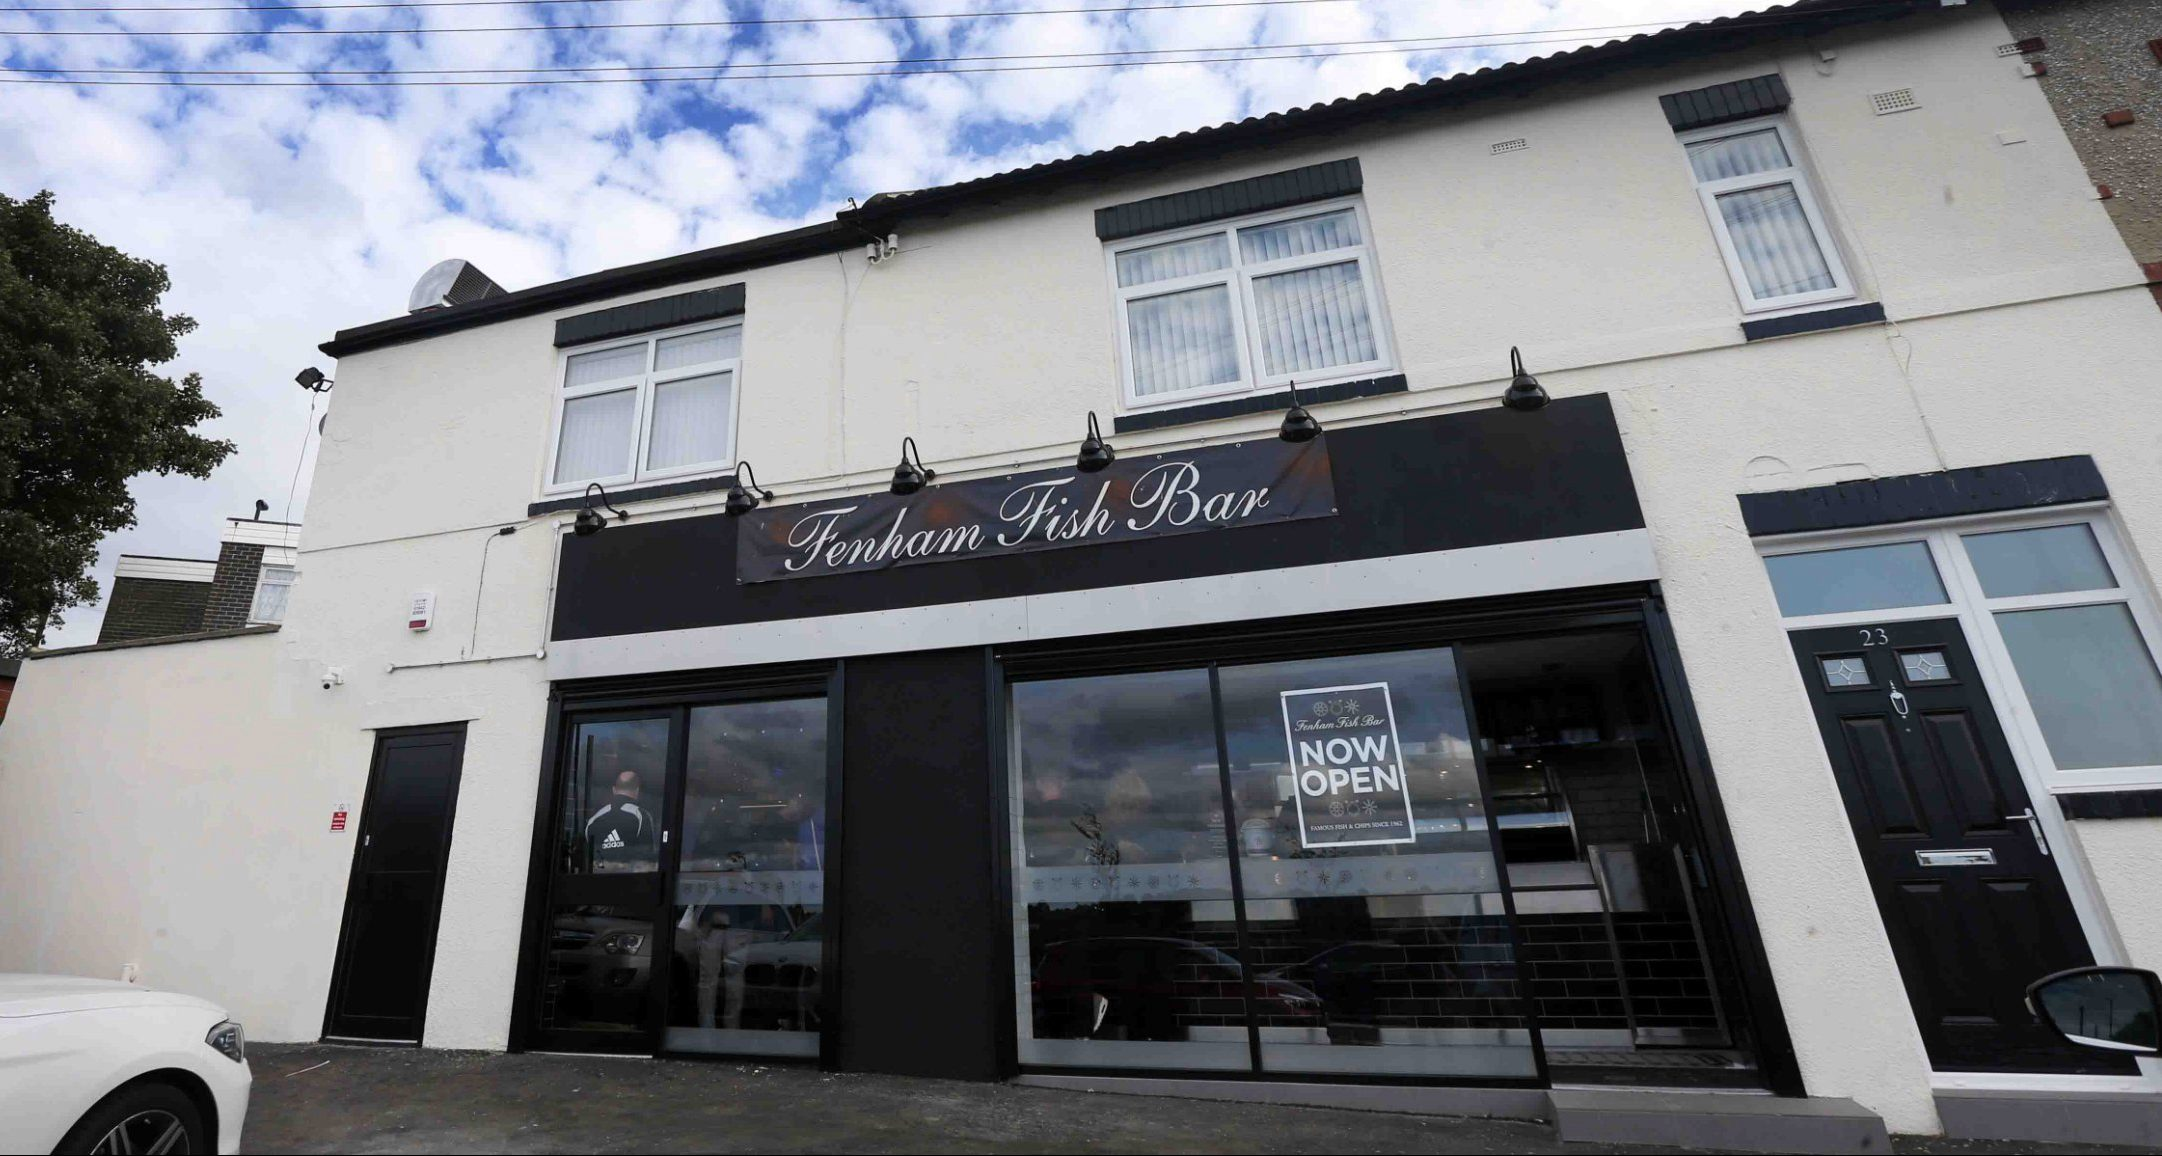 """A chippy has slammed a Tripadvisor troll who criticised staff for having tattoos. Fenham Fish Bar staff were branded 'low grade' for employing workers with inkings. But venue bosses have now hit back at the """"ridiculous"""" claims, telling ChronicleLive: """"Tattoos have NOTHING to do with how good you are at your job."""" Fenham Fish Bar in Cowgate that has reopened after a fire gutted the old shop"""